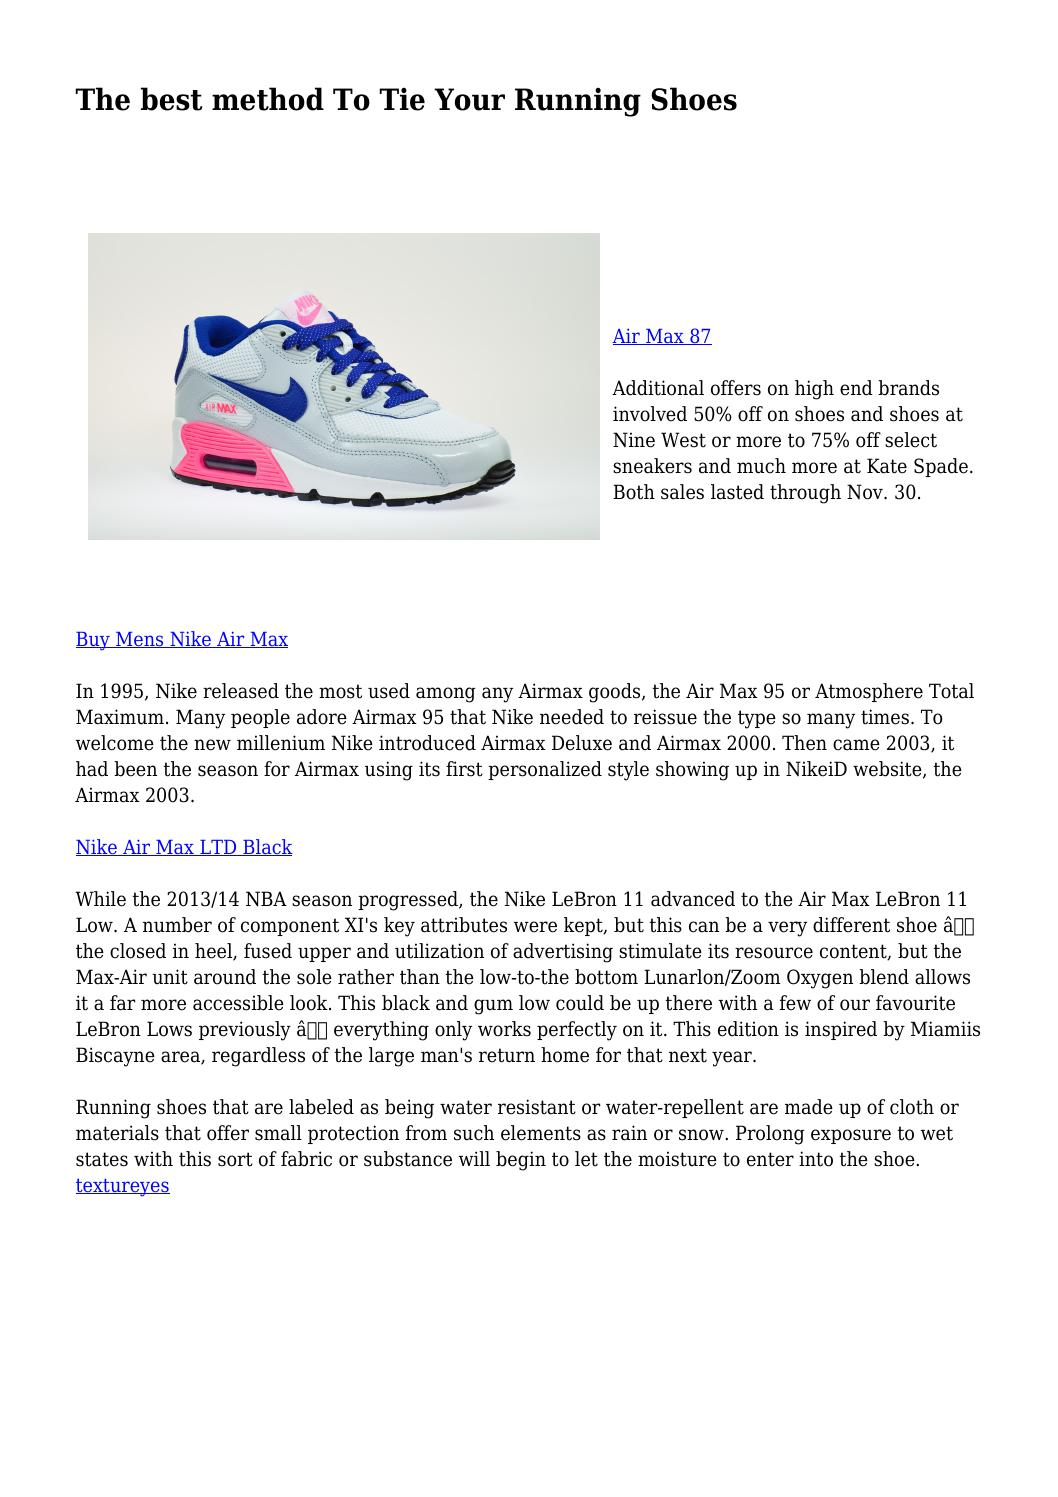 2bf1b593ba96e The best method To Tie Your Running Shoes by politicalcloset80 - issuu